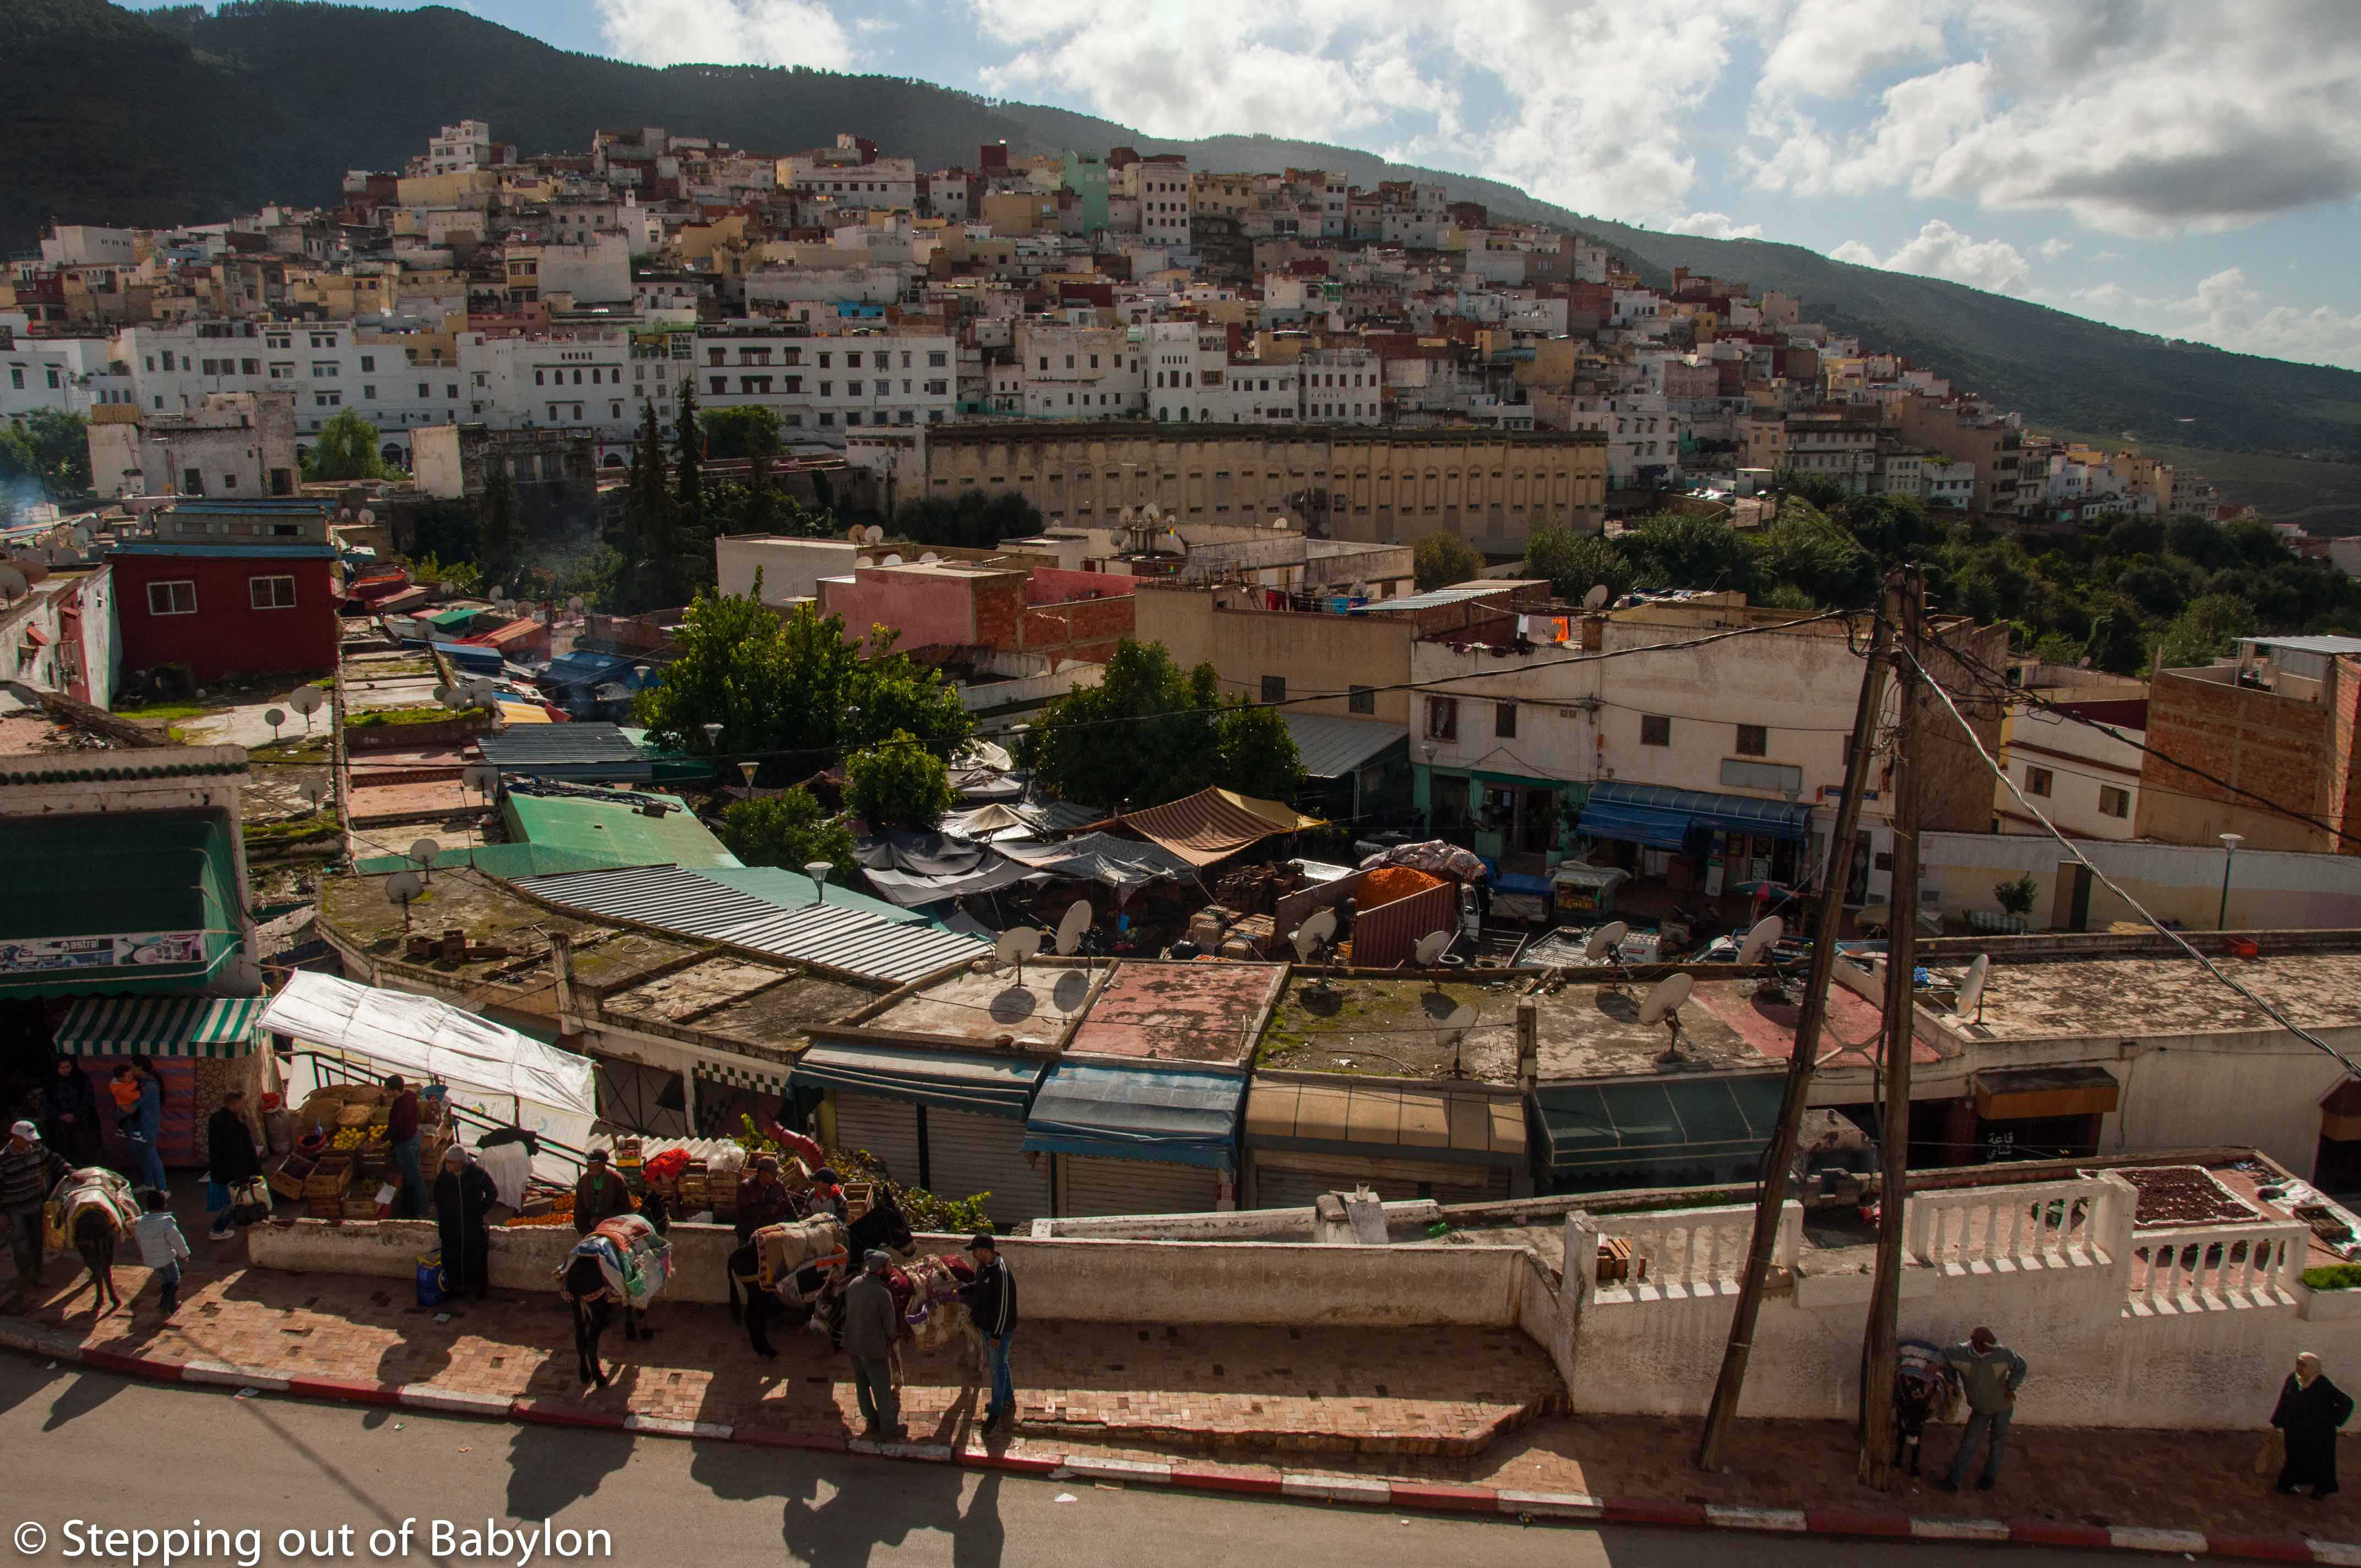 Mulay Idriss and the countryside lifestyle